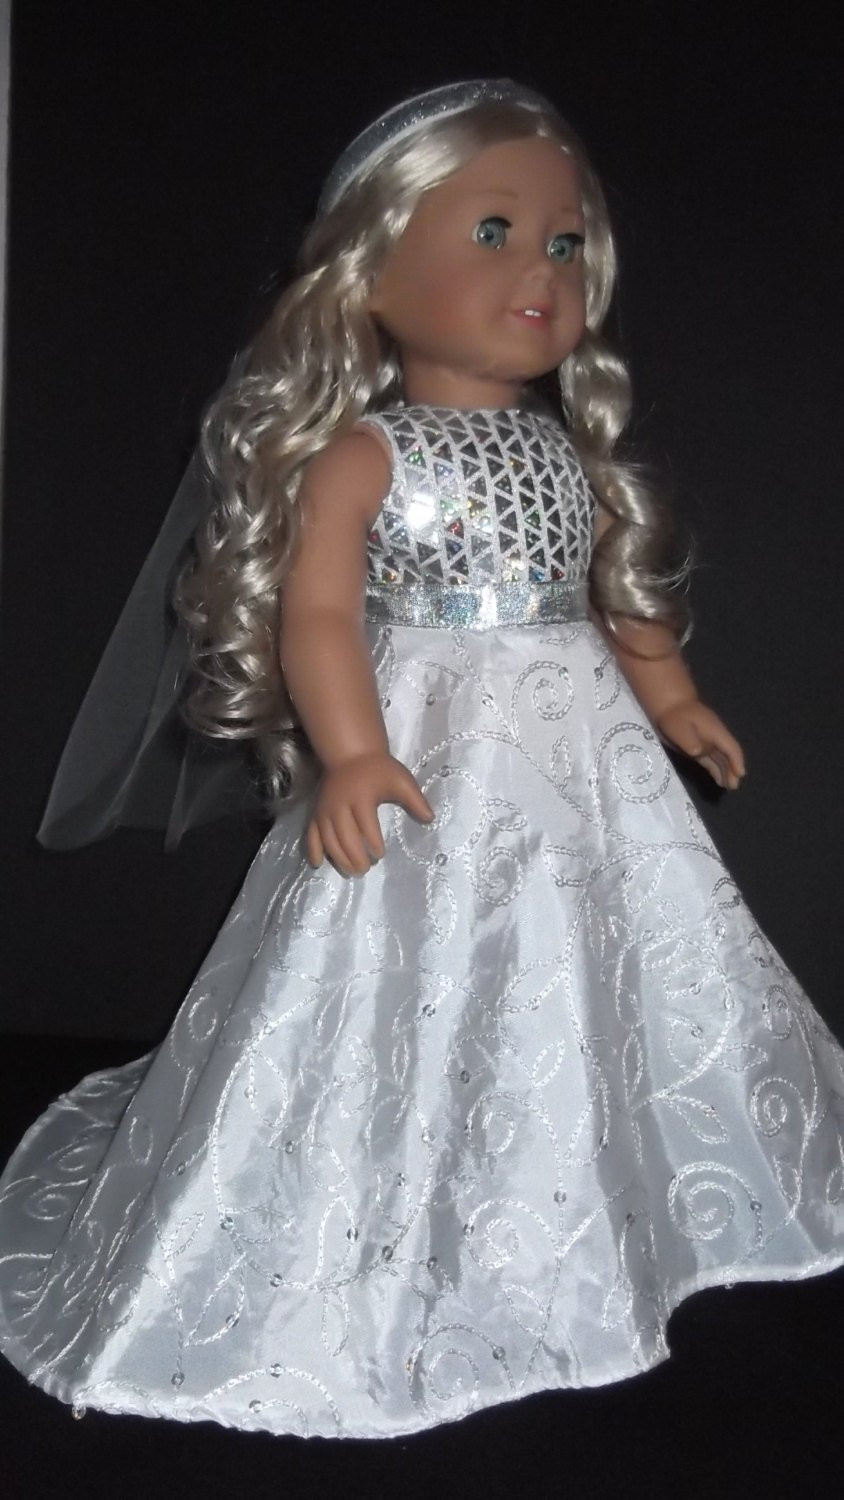 Best Of American Girl Doll Clothes Wedding Gown and Veil 257 American Girl Doll Wedding Dress Of Best Of White Munion Wedding Dress formal Spring Church Fits 18 American Girl Doll Wedding Dress